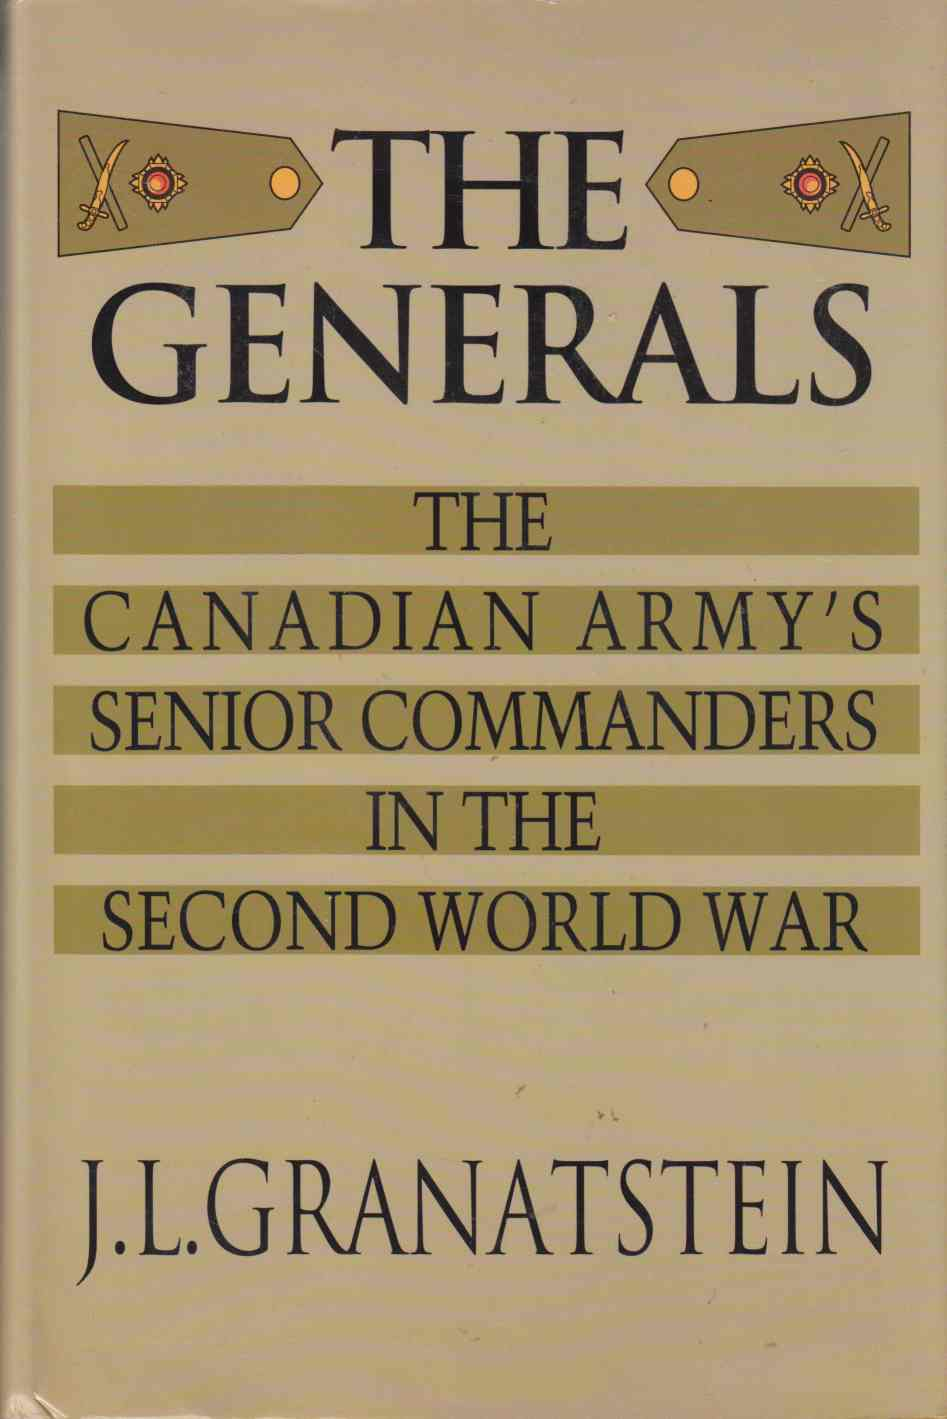 Image for The Generals The Canadian Army's Senior Commanders in the Second World War